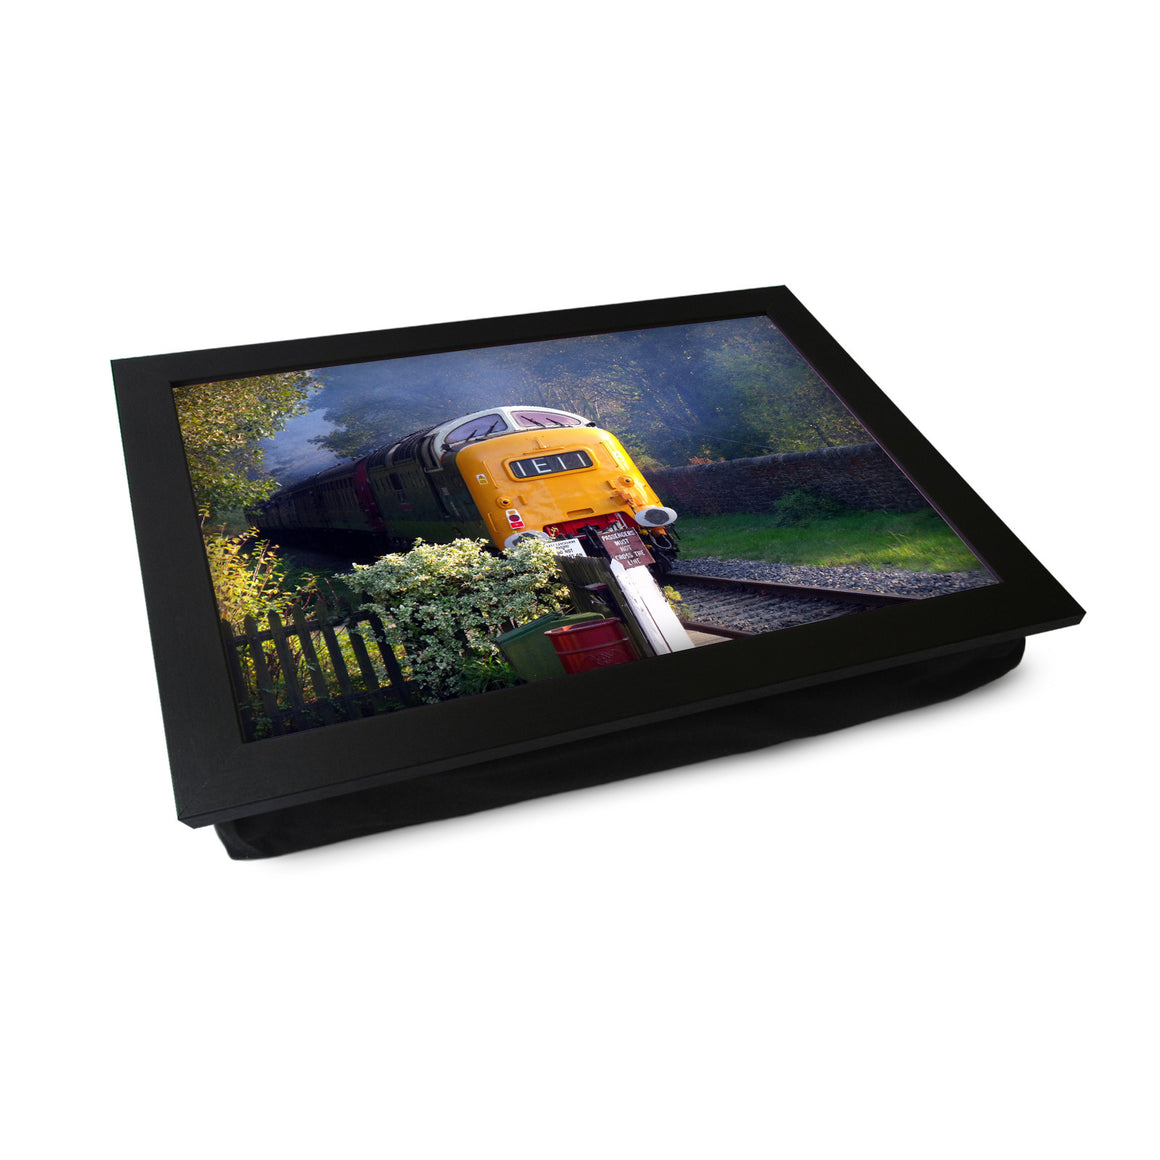 Delta Locomotive Lap Tray - L0275